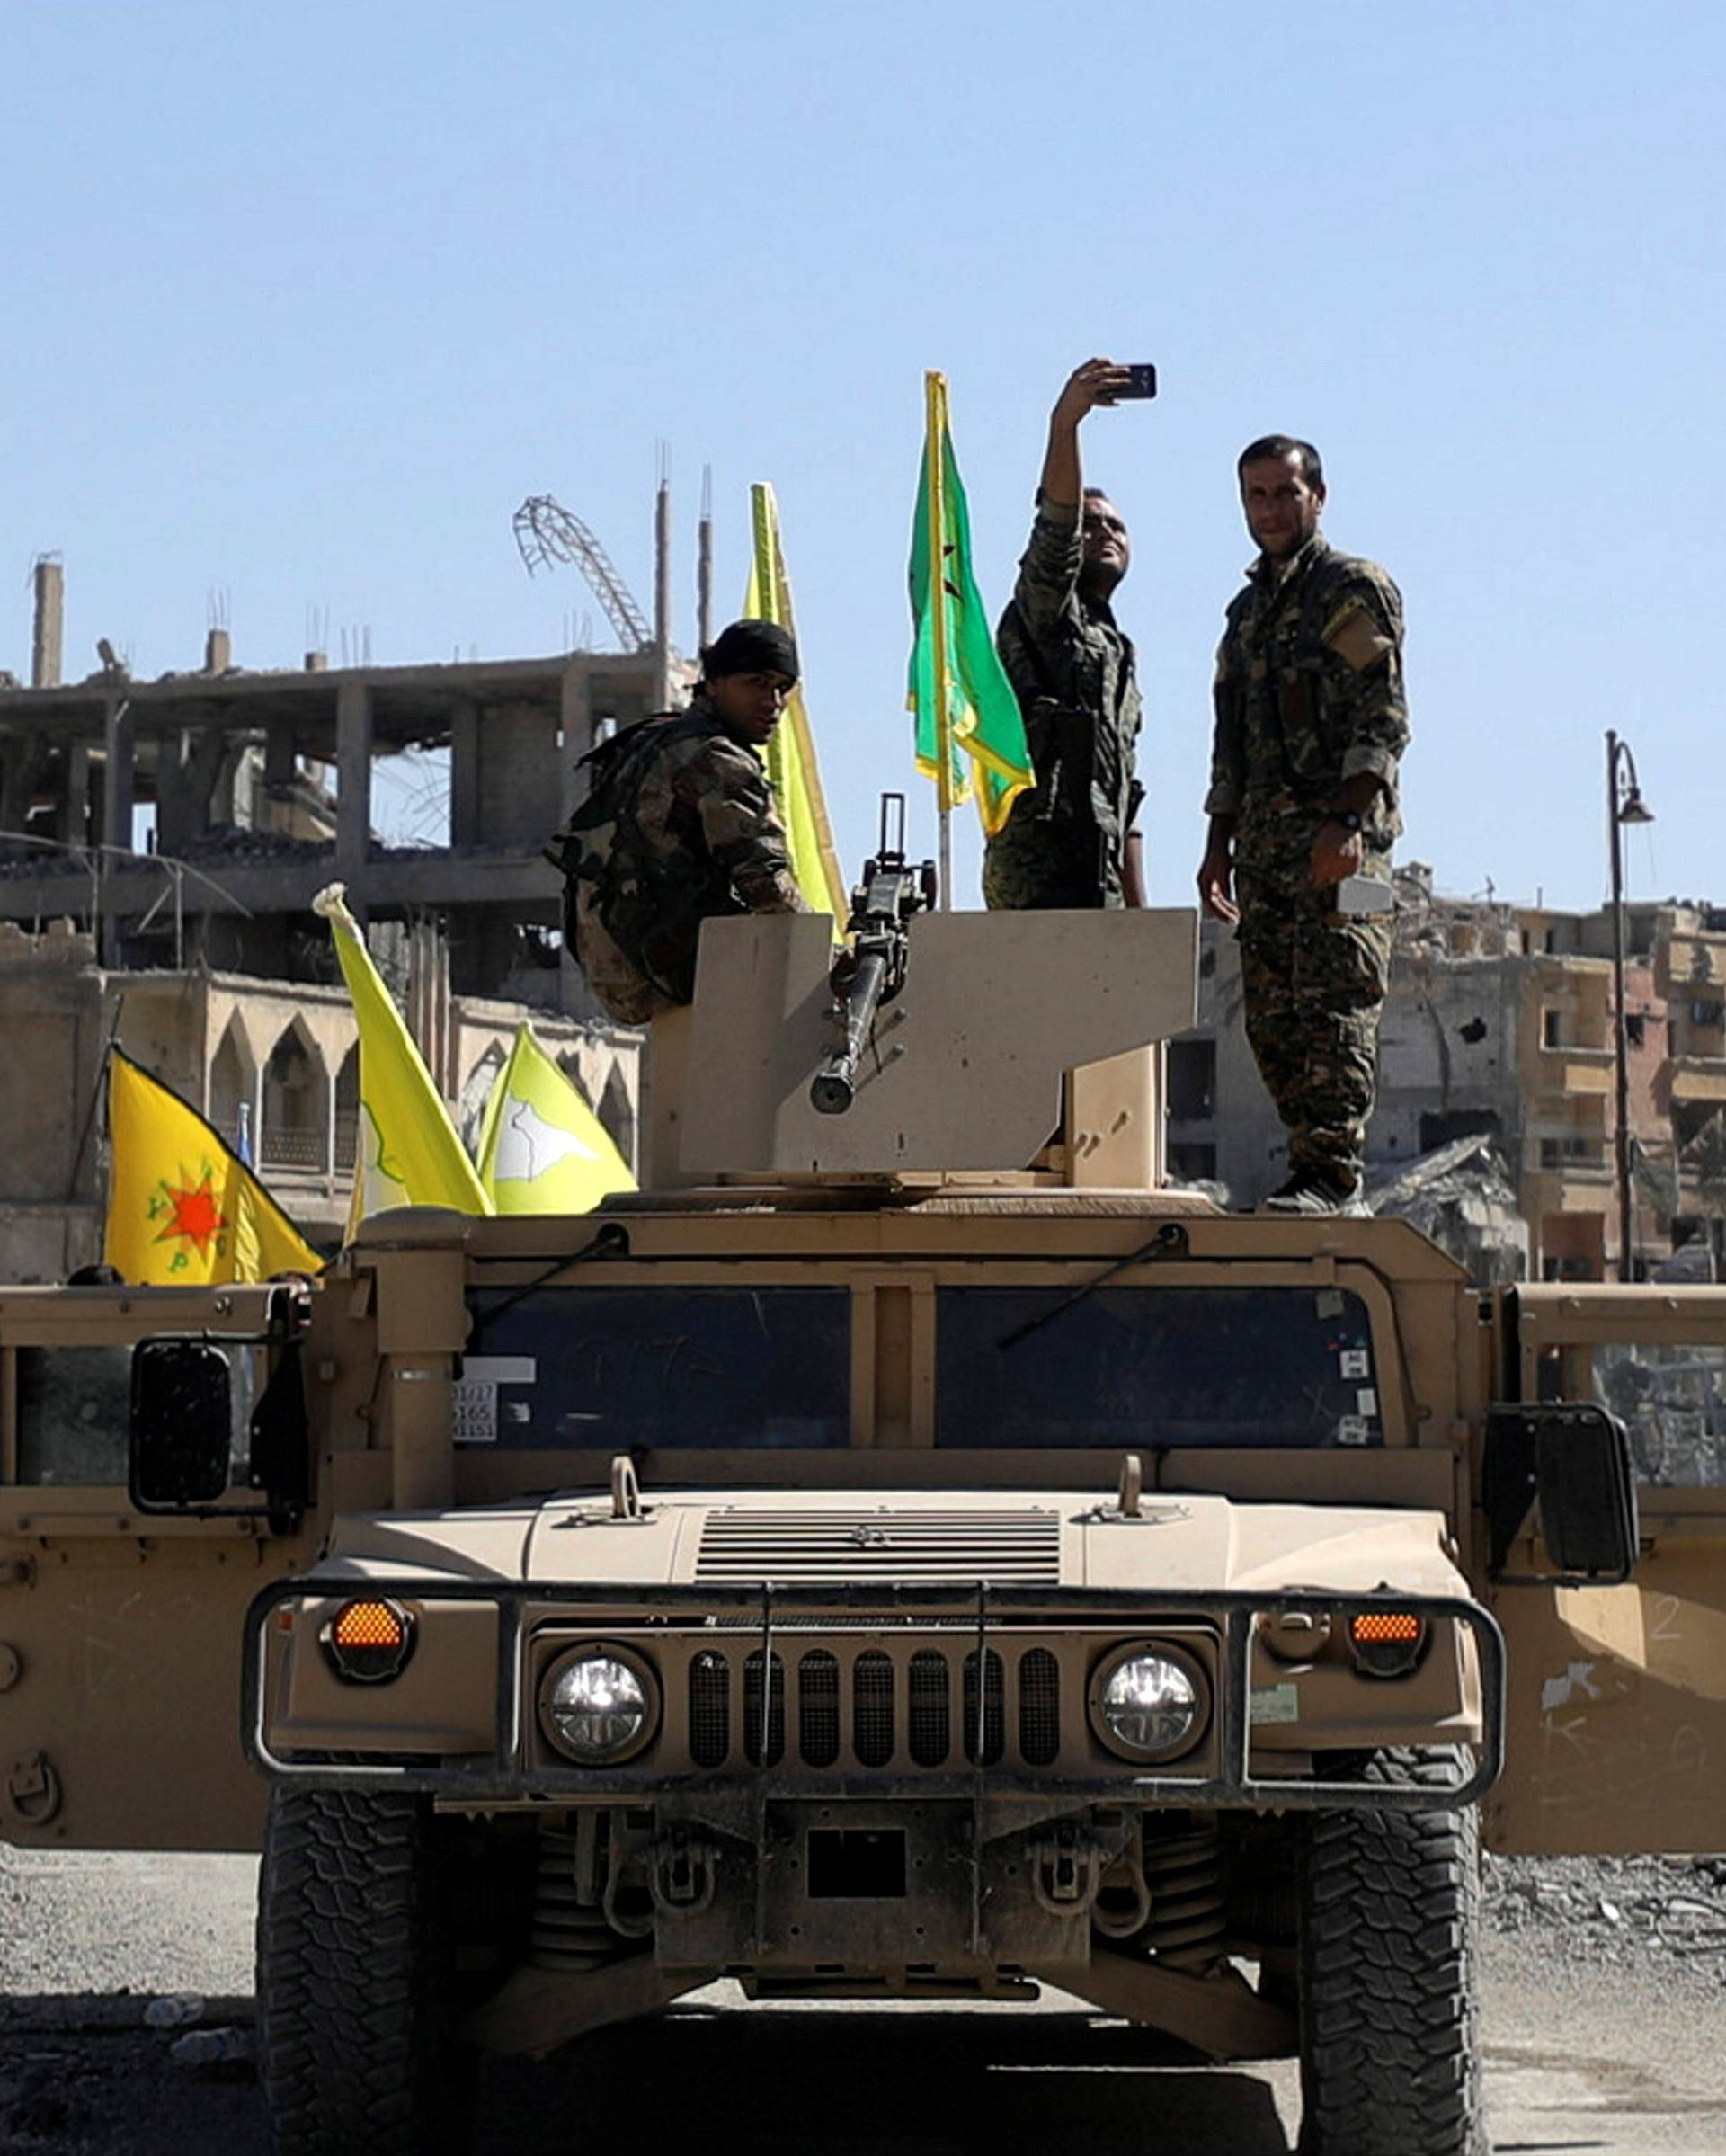 A Fighter of Syrian Democratic Forces takes a selfie as he stands on a military vehicle in Raqqa